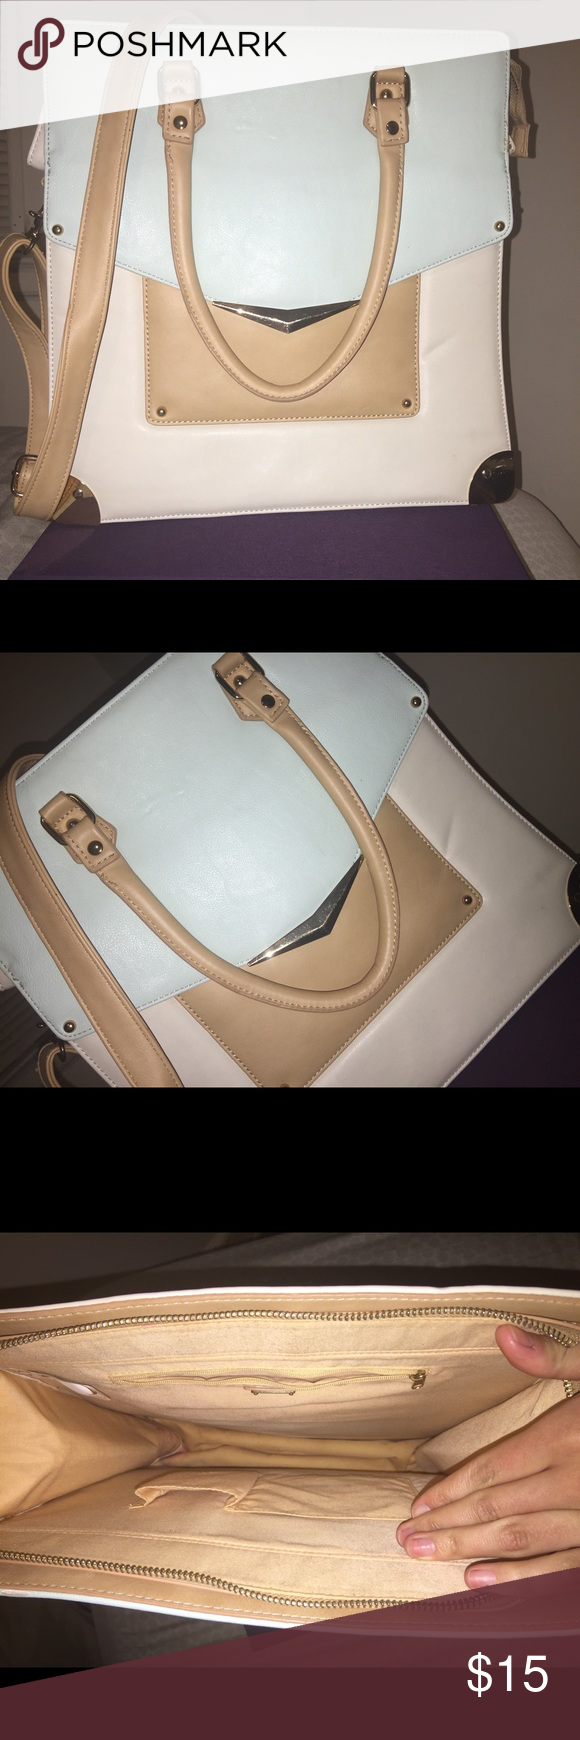 Aldo Bag Unique Tall Shoulder/ Crossbody Purse. This uniquely shaped bag by Aldo is a headturner! Great for carrying a small laptop/ ipad or paperwork. Light weight. Light usage, few creases in the front. A very light aqua color with tan body. Adjustable shoulder strap. Aldo Bags Shoulder Bags